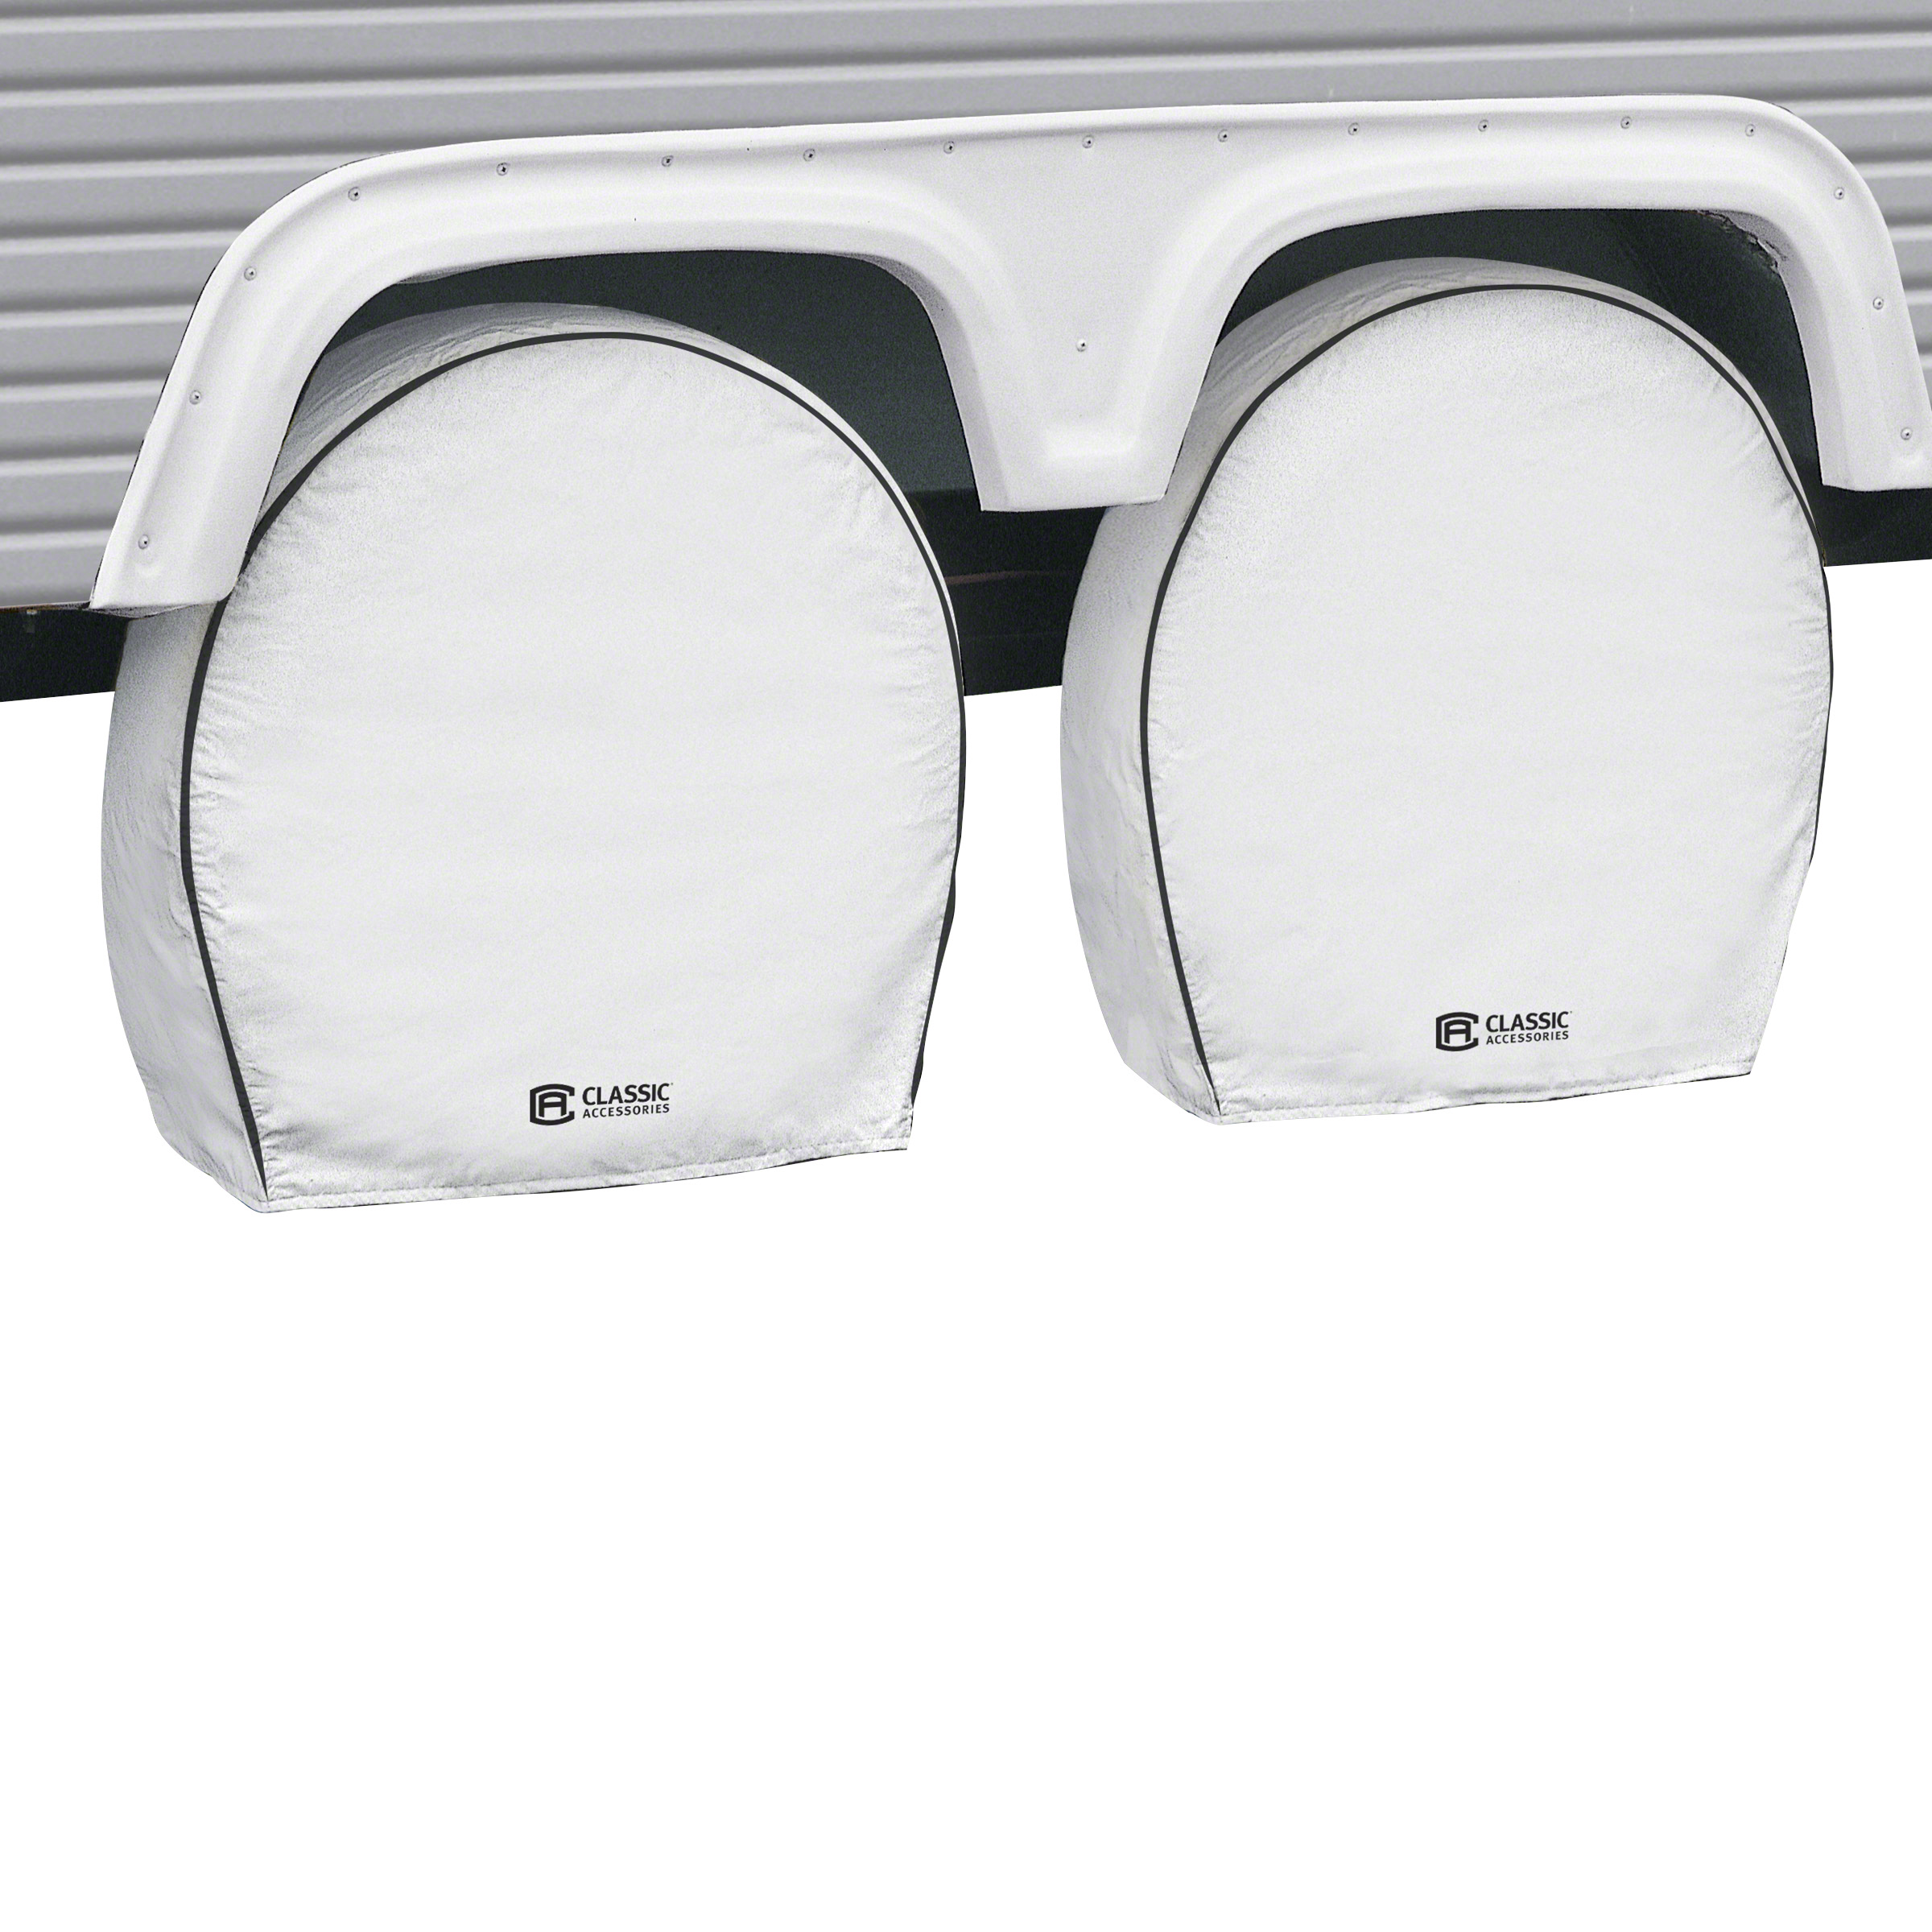 Classic Accessories OverDrive Deluxe RV Wheel Covers (4-pack), White, Choose Wheel Diameter 18'' - 41''